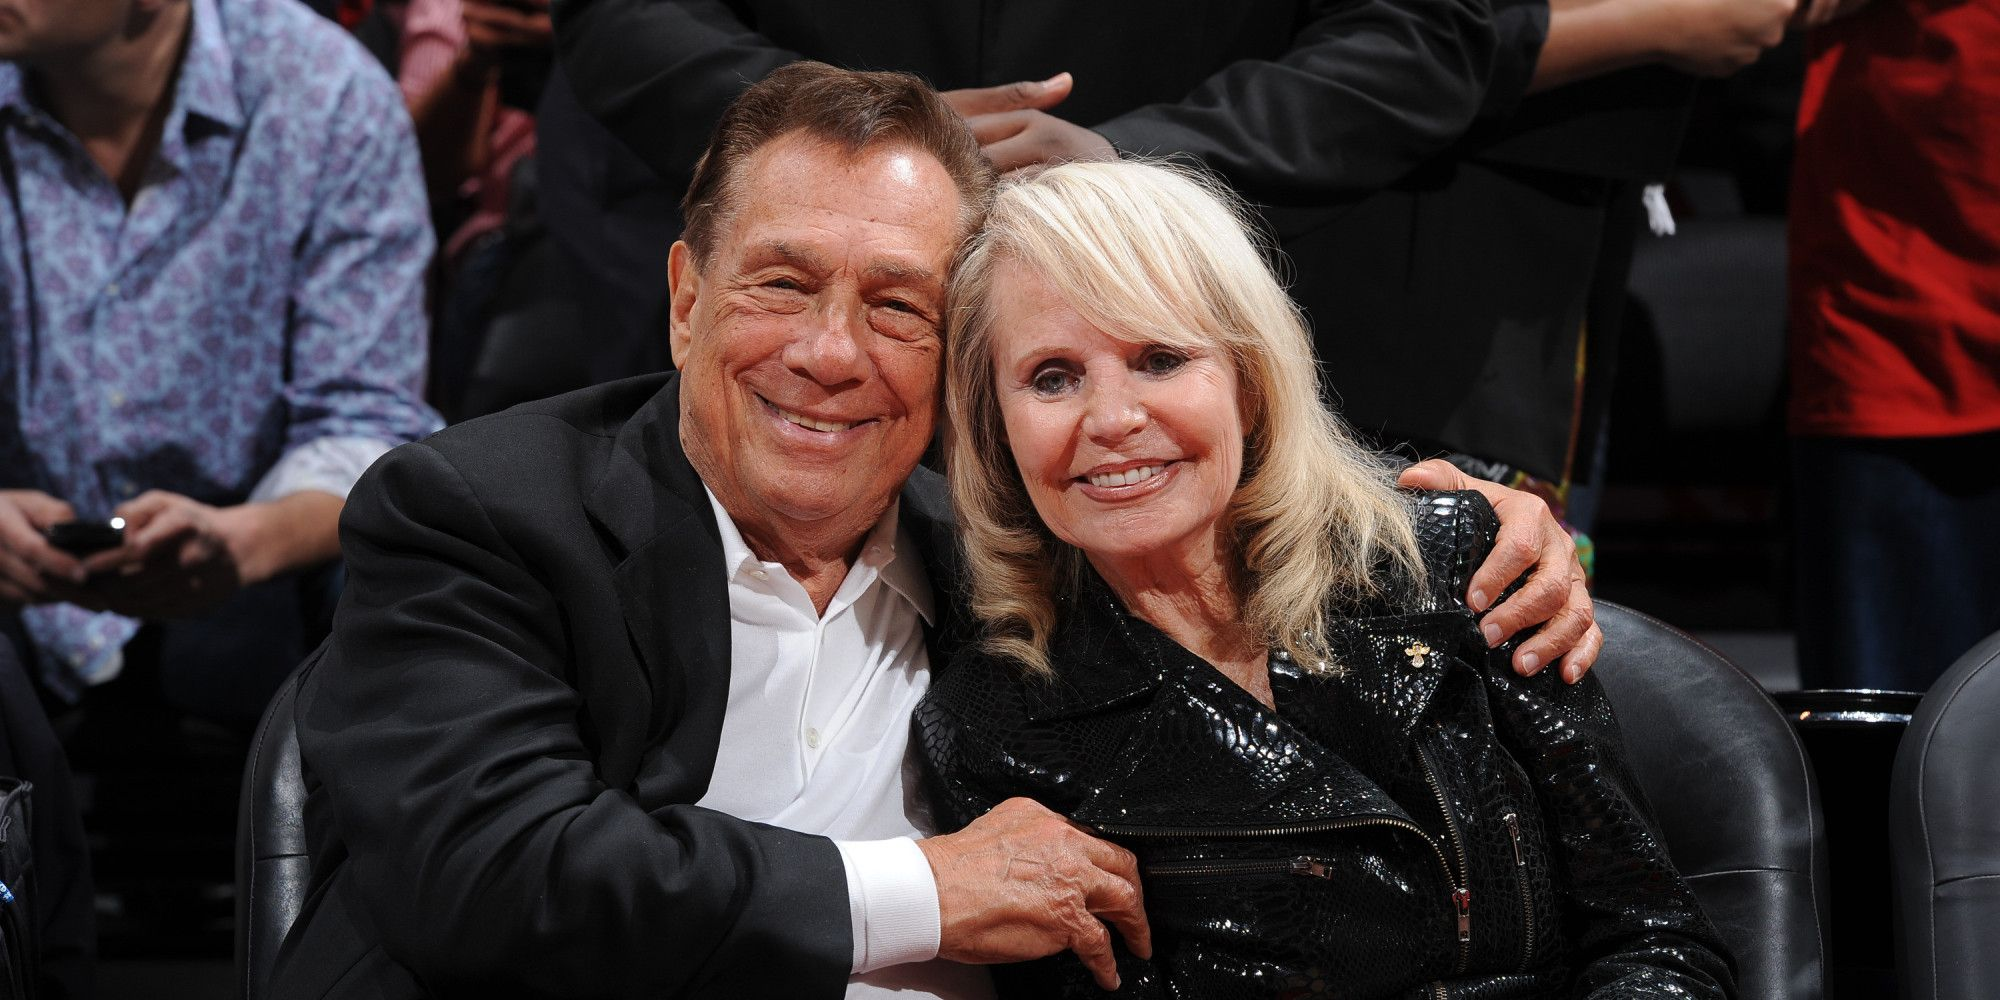 Los Angeles Ap Los Angeles Clippers Owner Donald Sterling Agreed Wednesday To Sign Off On Selling The Team He Has Owned For Donald Sterling Donald Mistress